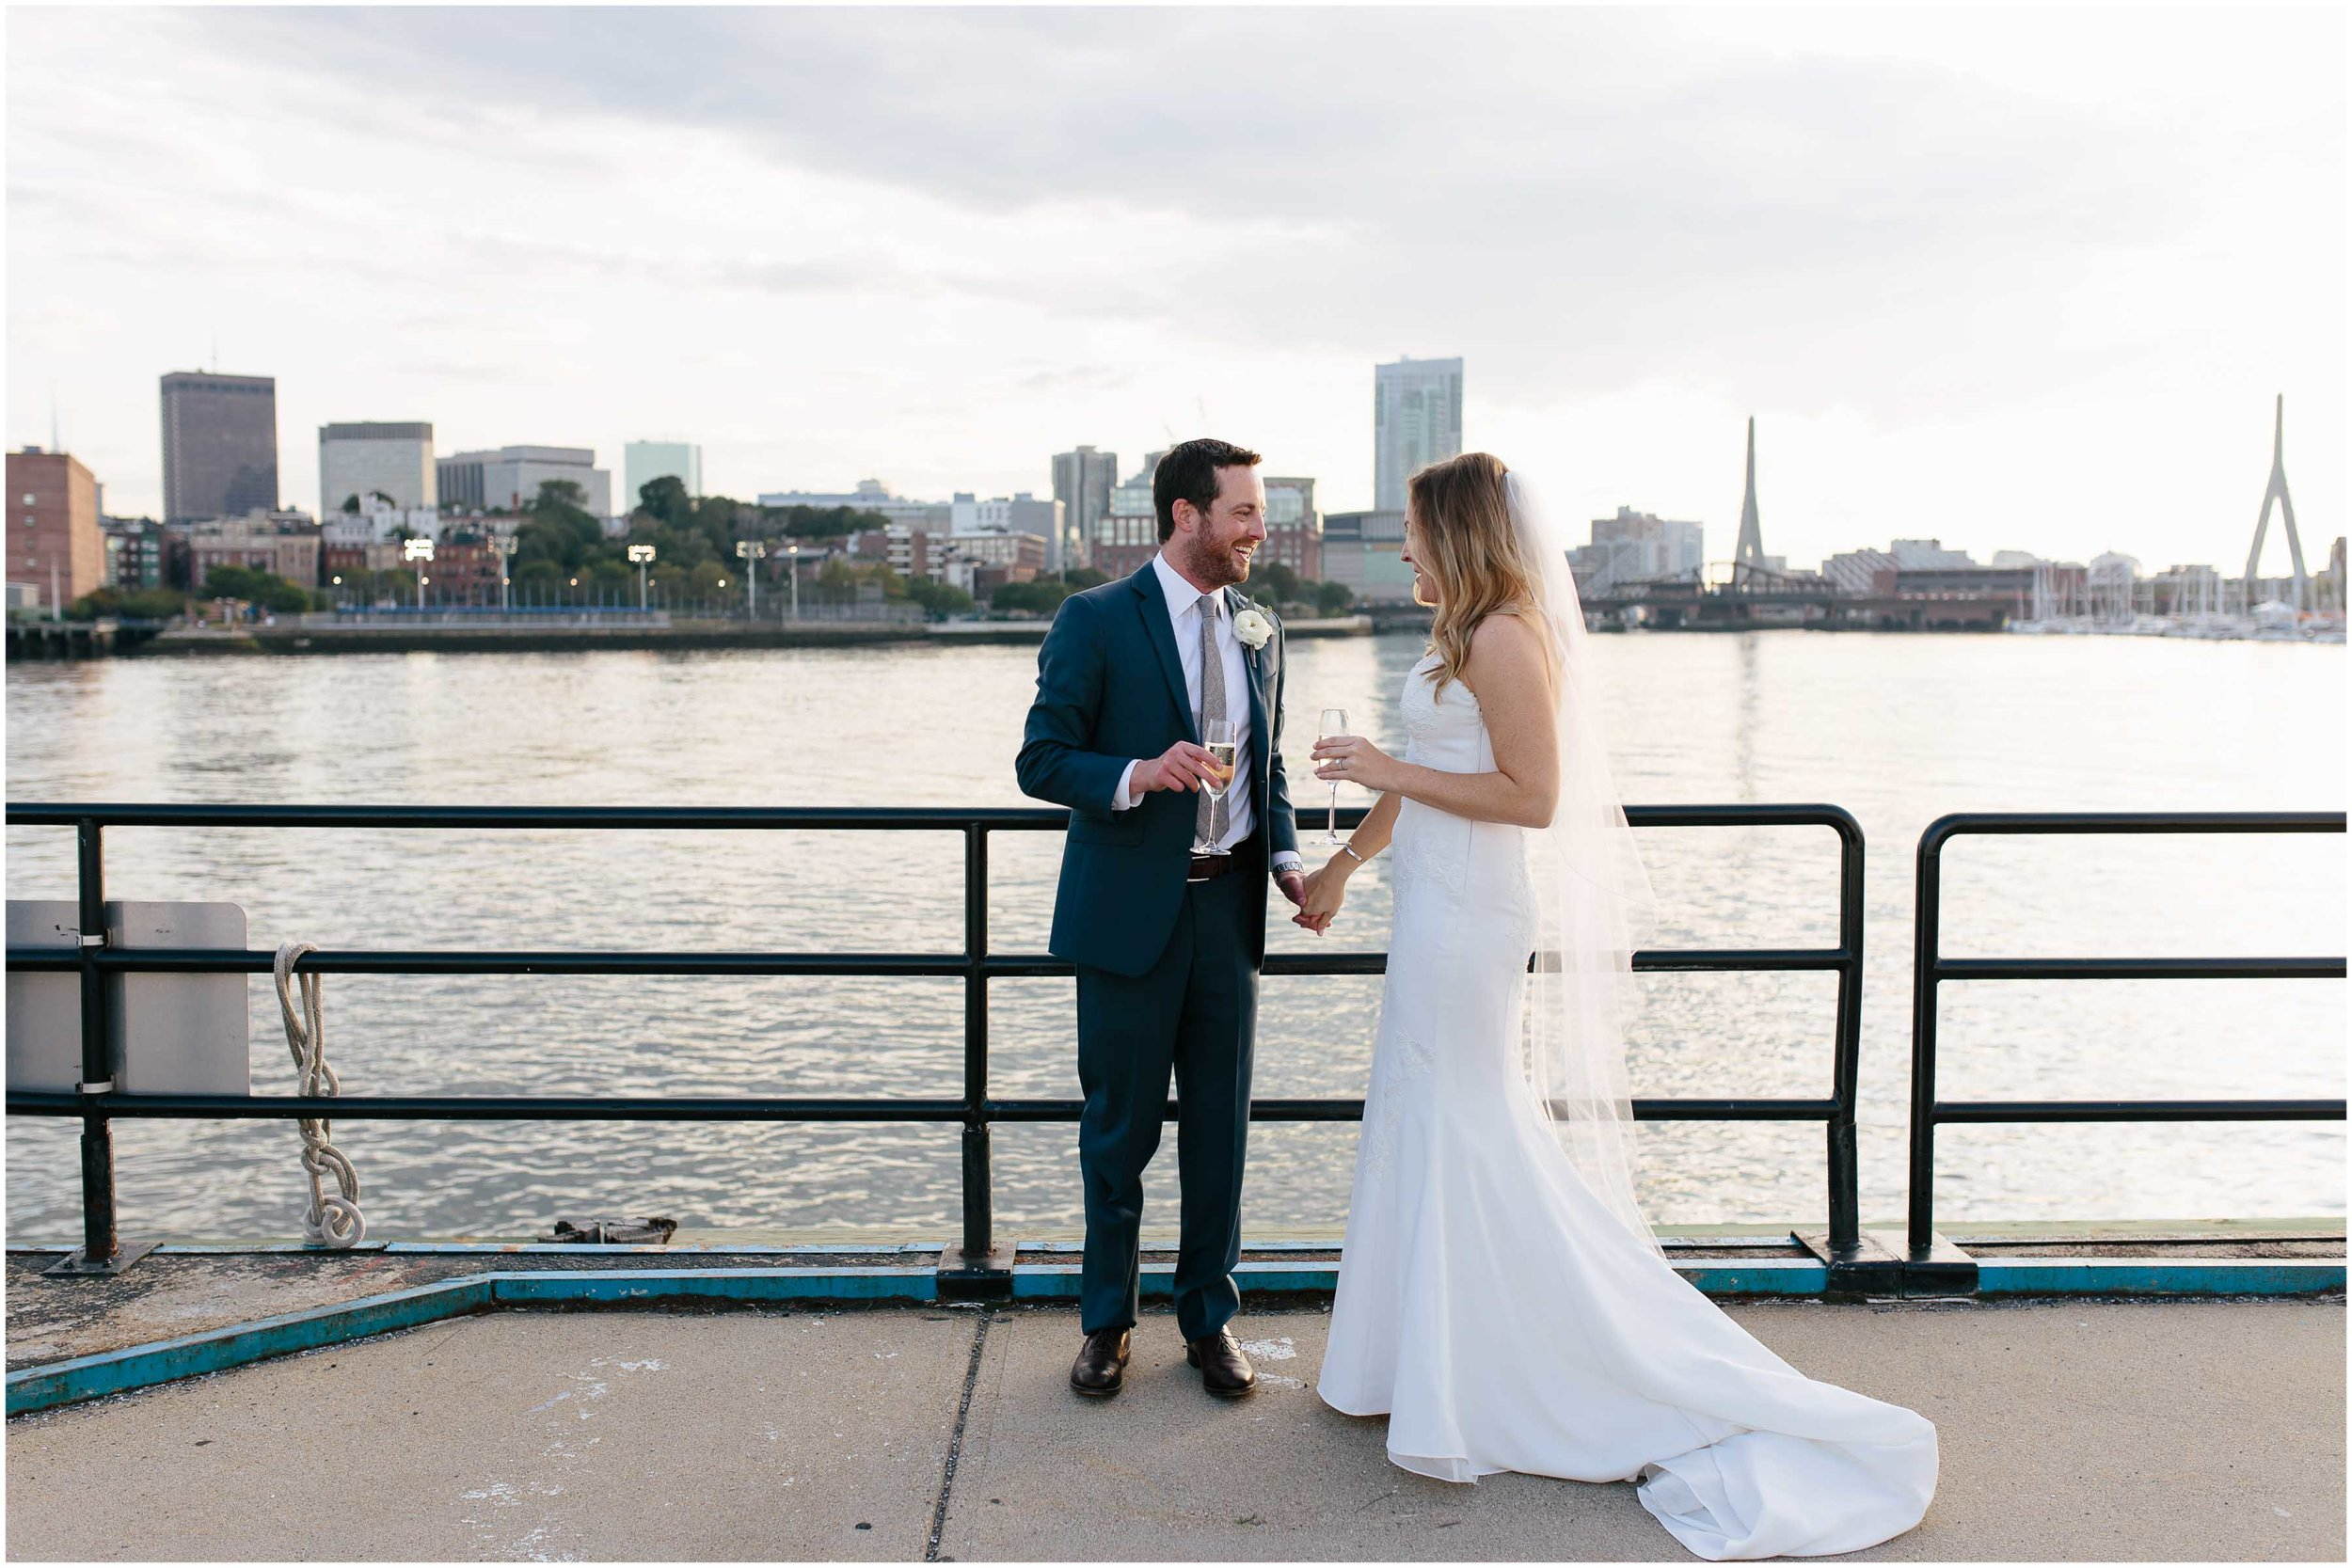 Nautical Massachusetts Jewish Wedding in the Boston Navy Yard bride and groom